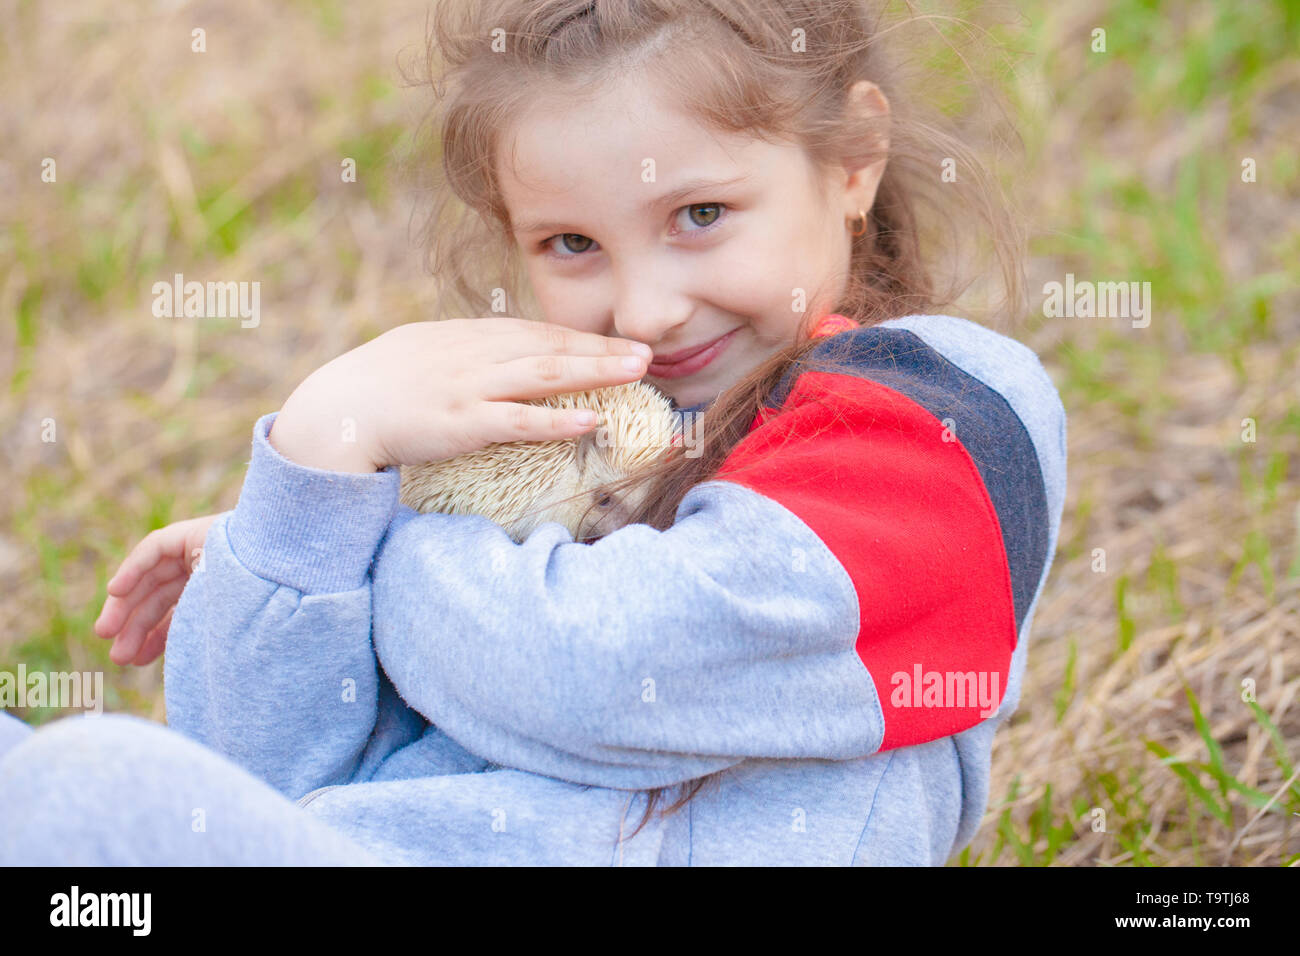 The concept of friendship between humans and animals. Little girl hugging a hedgehog. A child plays with a rodent. - Stock Image